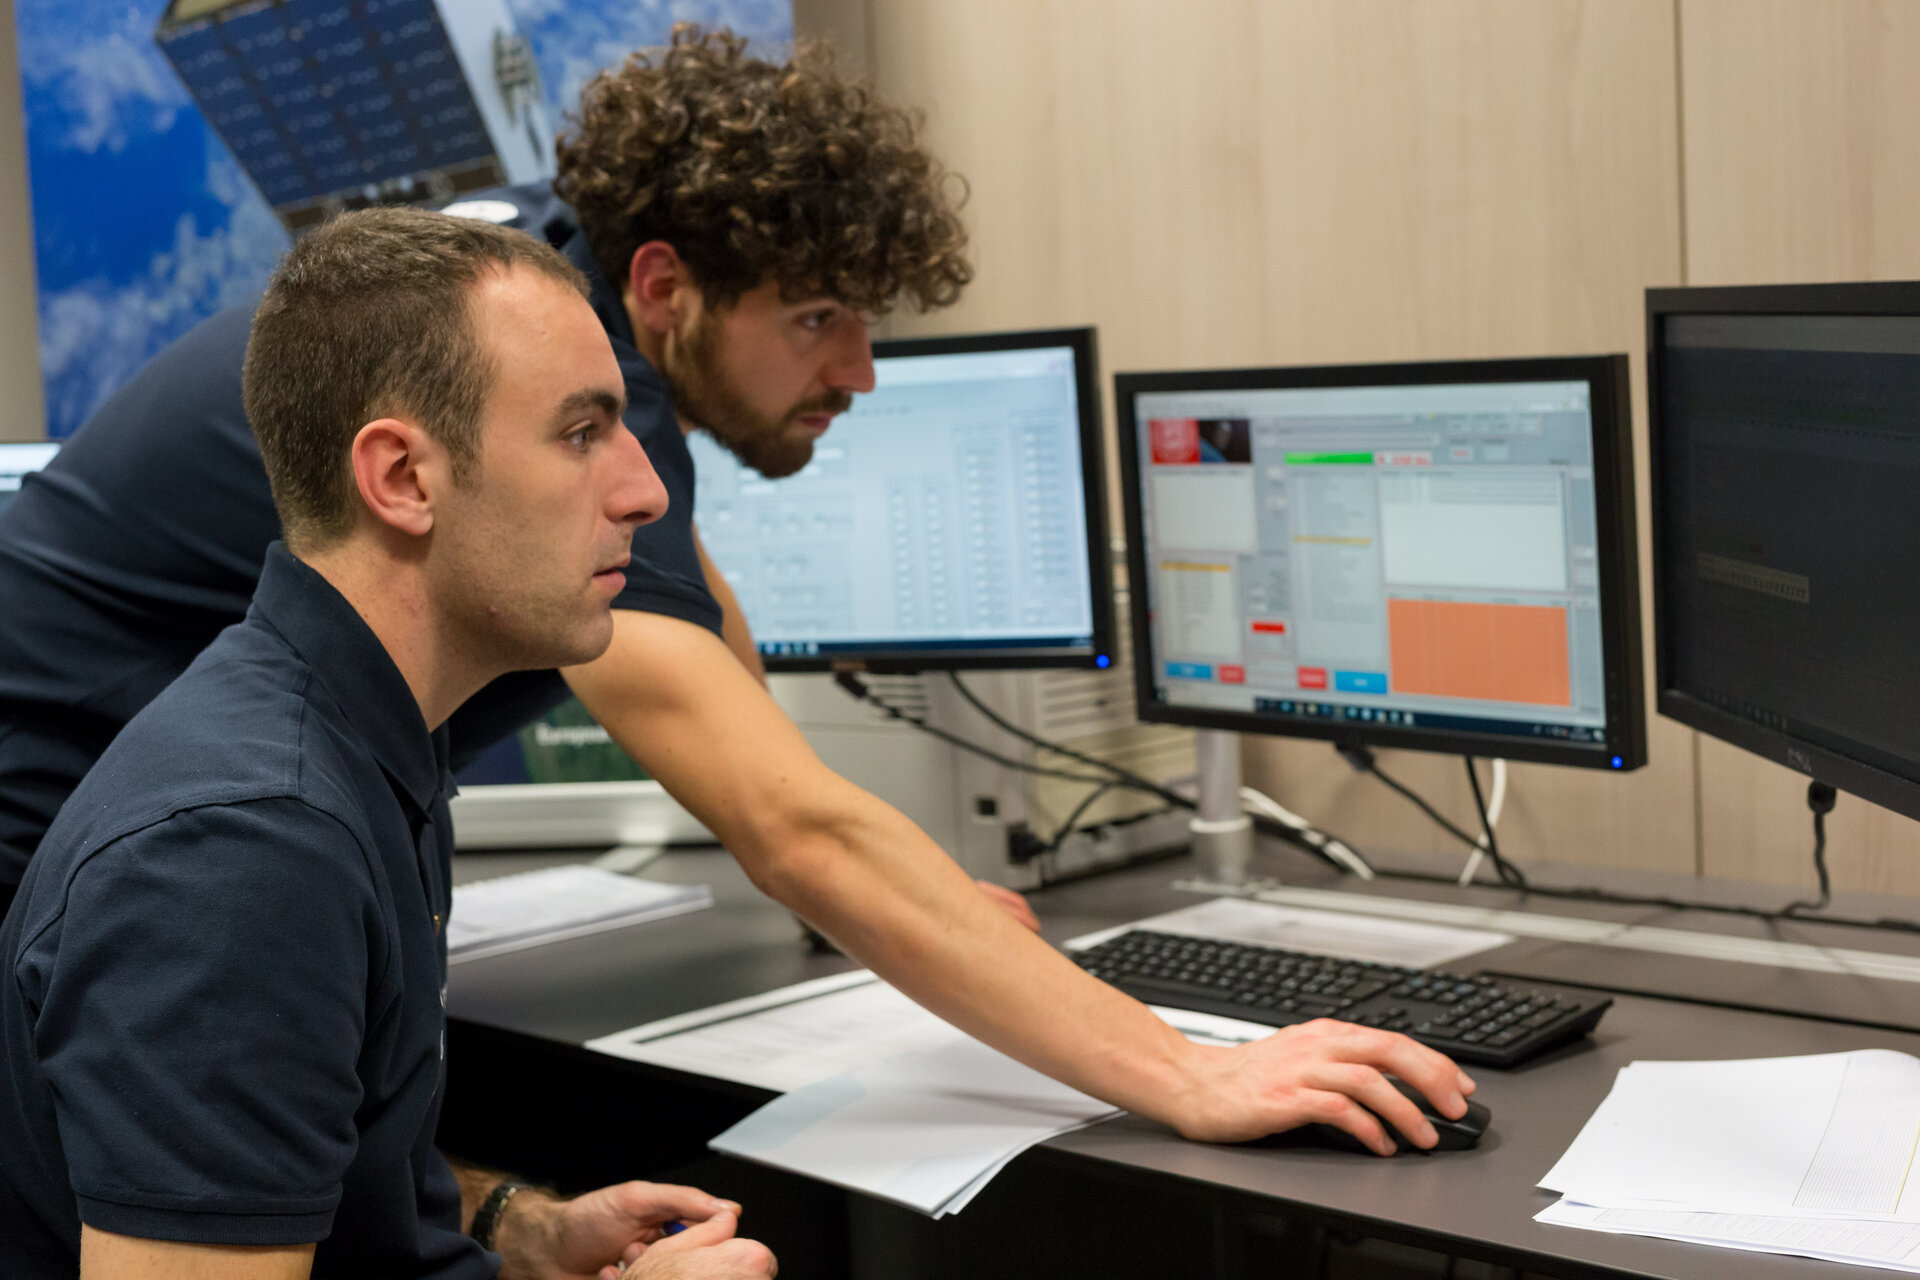 ESEO mission Control Center - ESEO student operators monitoring ESEO